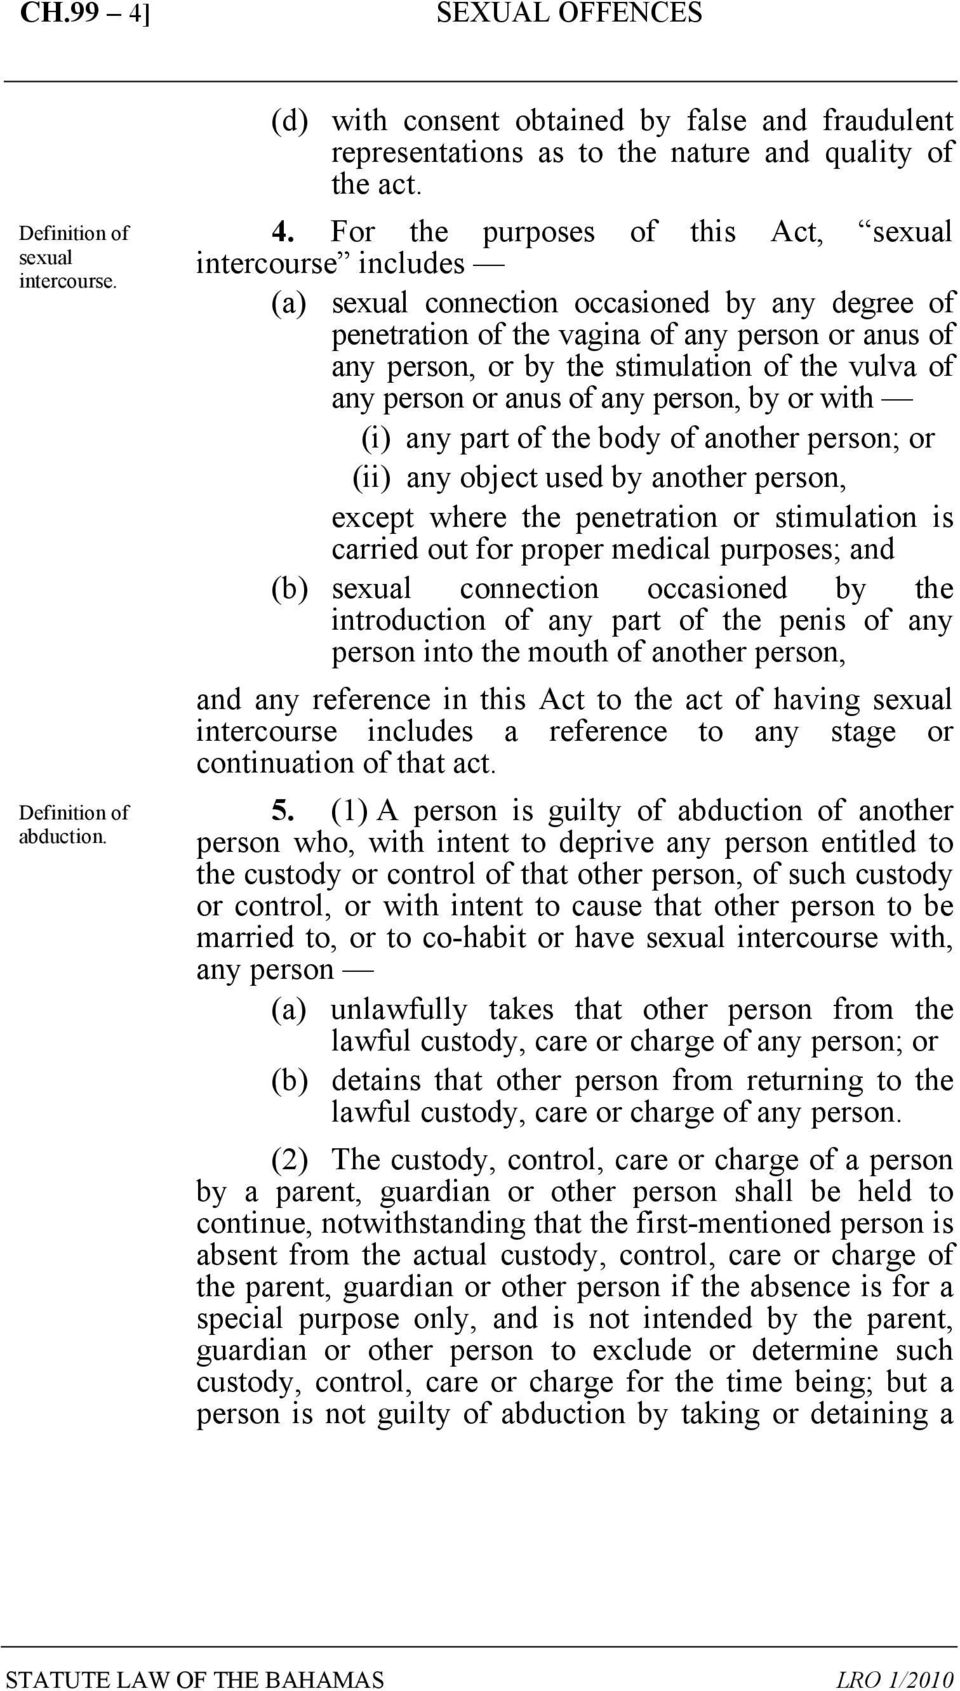 For the purposes of this Act, sexual intercourse includes (a) sexual connection occasioned by any degree of penetration of the vagina of any person or anus of any person, or by the stimulation of the